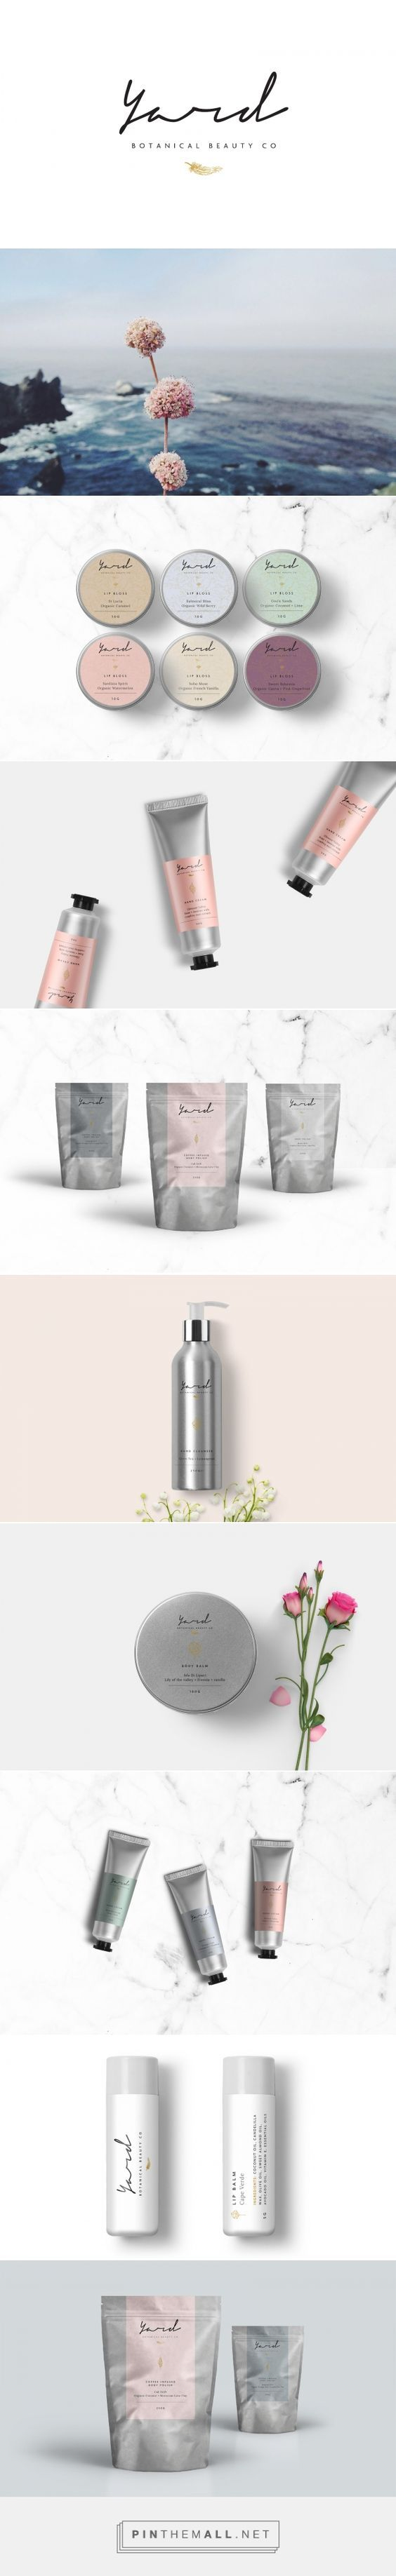 Yard Skincare Packaging by Aldershots Design Studio | Fivestar Branding – Design and Branding Agency & Inspiration Gallery